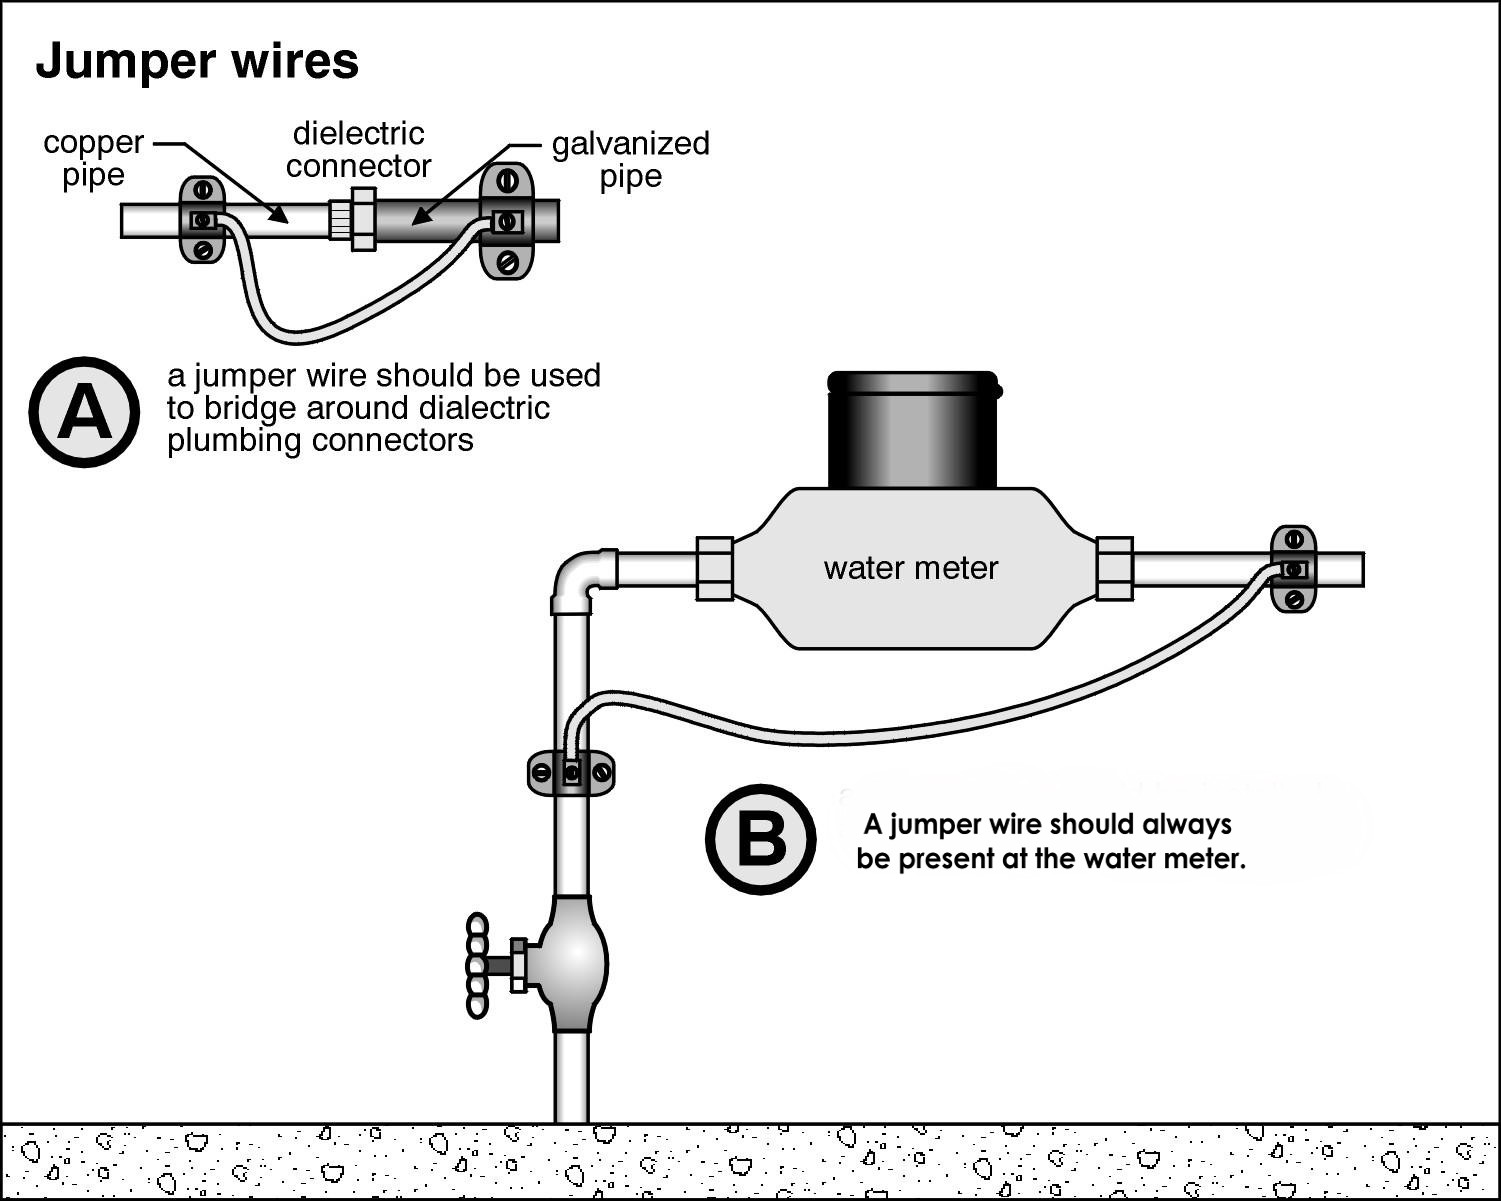 hight resolution of but if the water pipe is used as part of the electrical system it must be complete the water meter gets in the way the solution is simple bond a wire